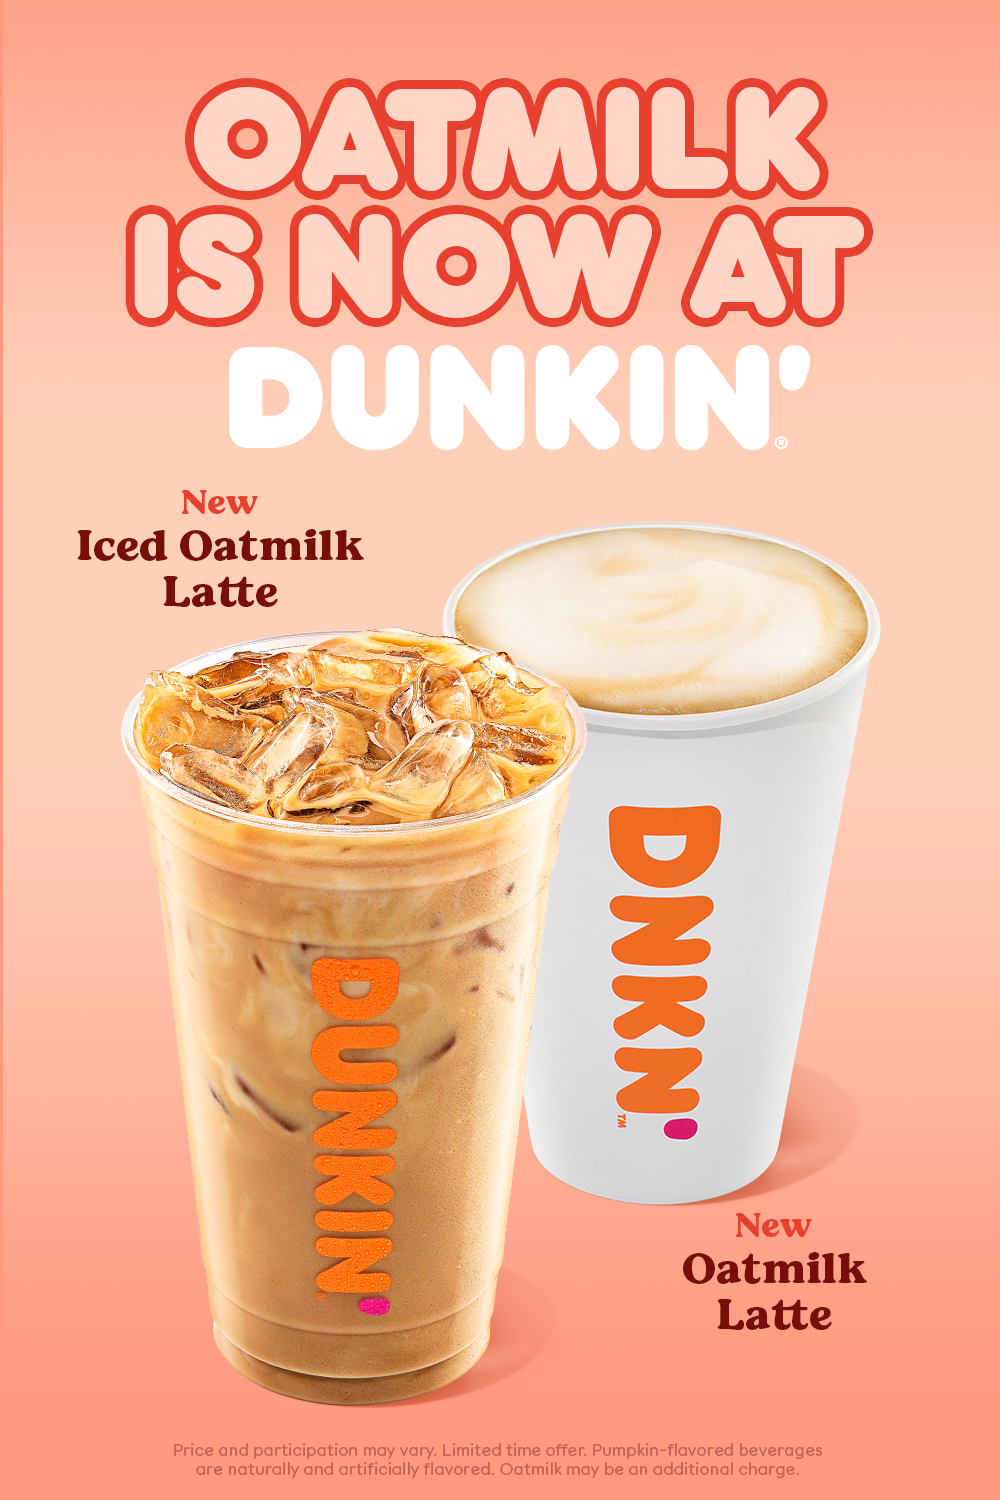 Oatmilk is now at Dunkin' in 2020 Dunkin, Real food